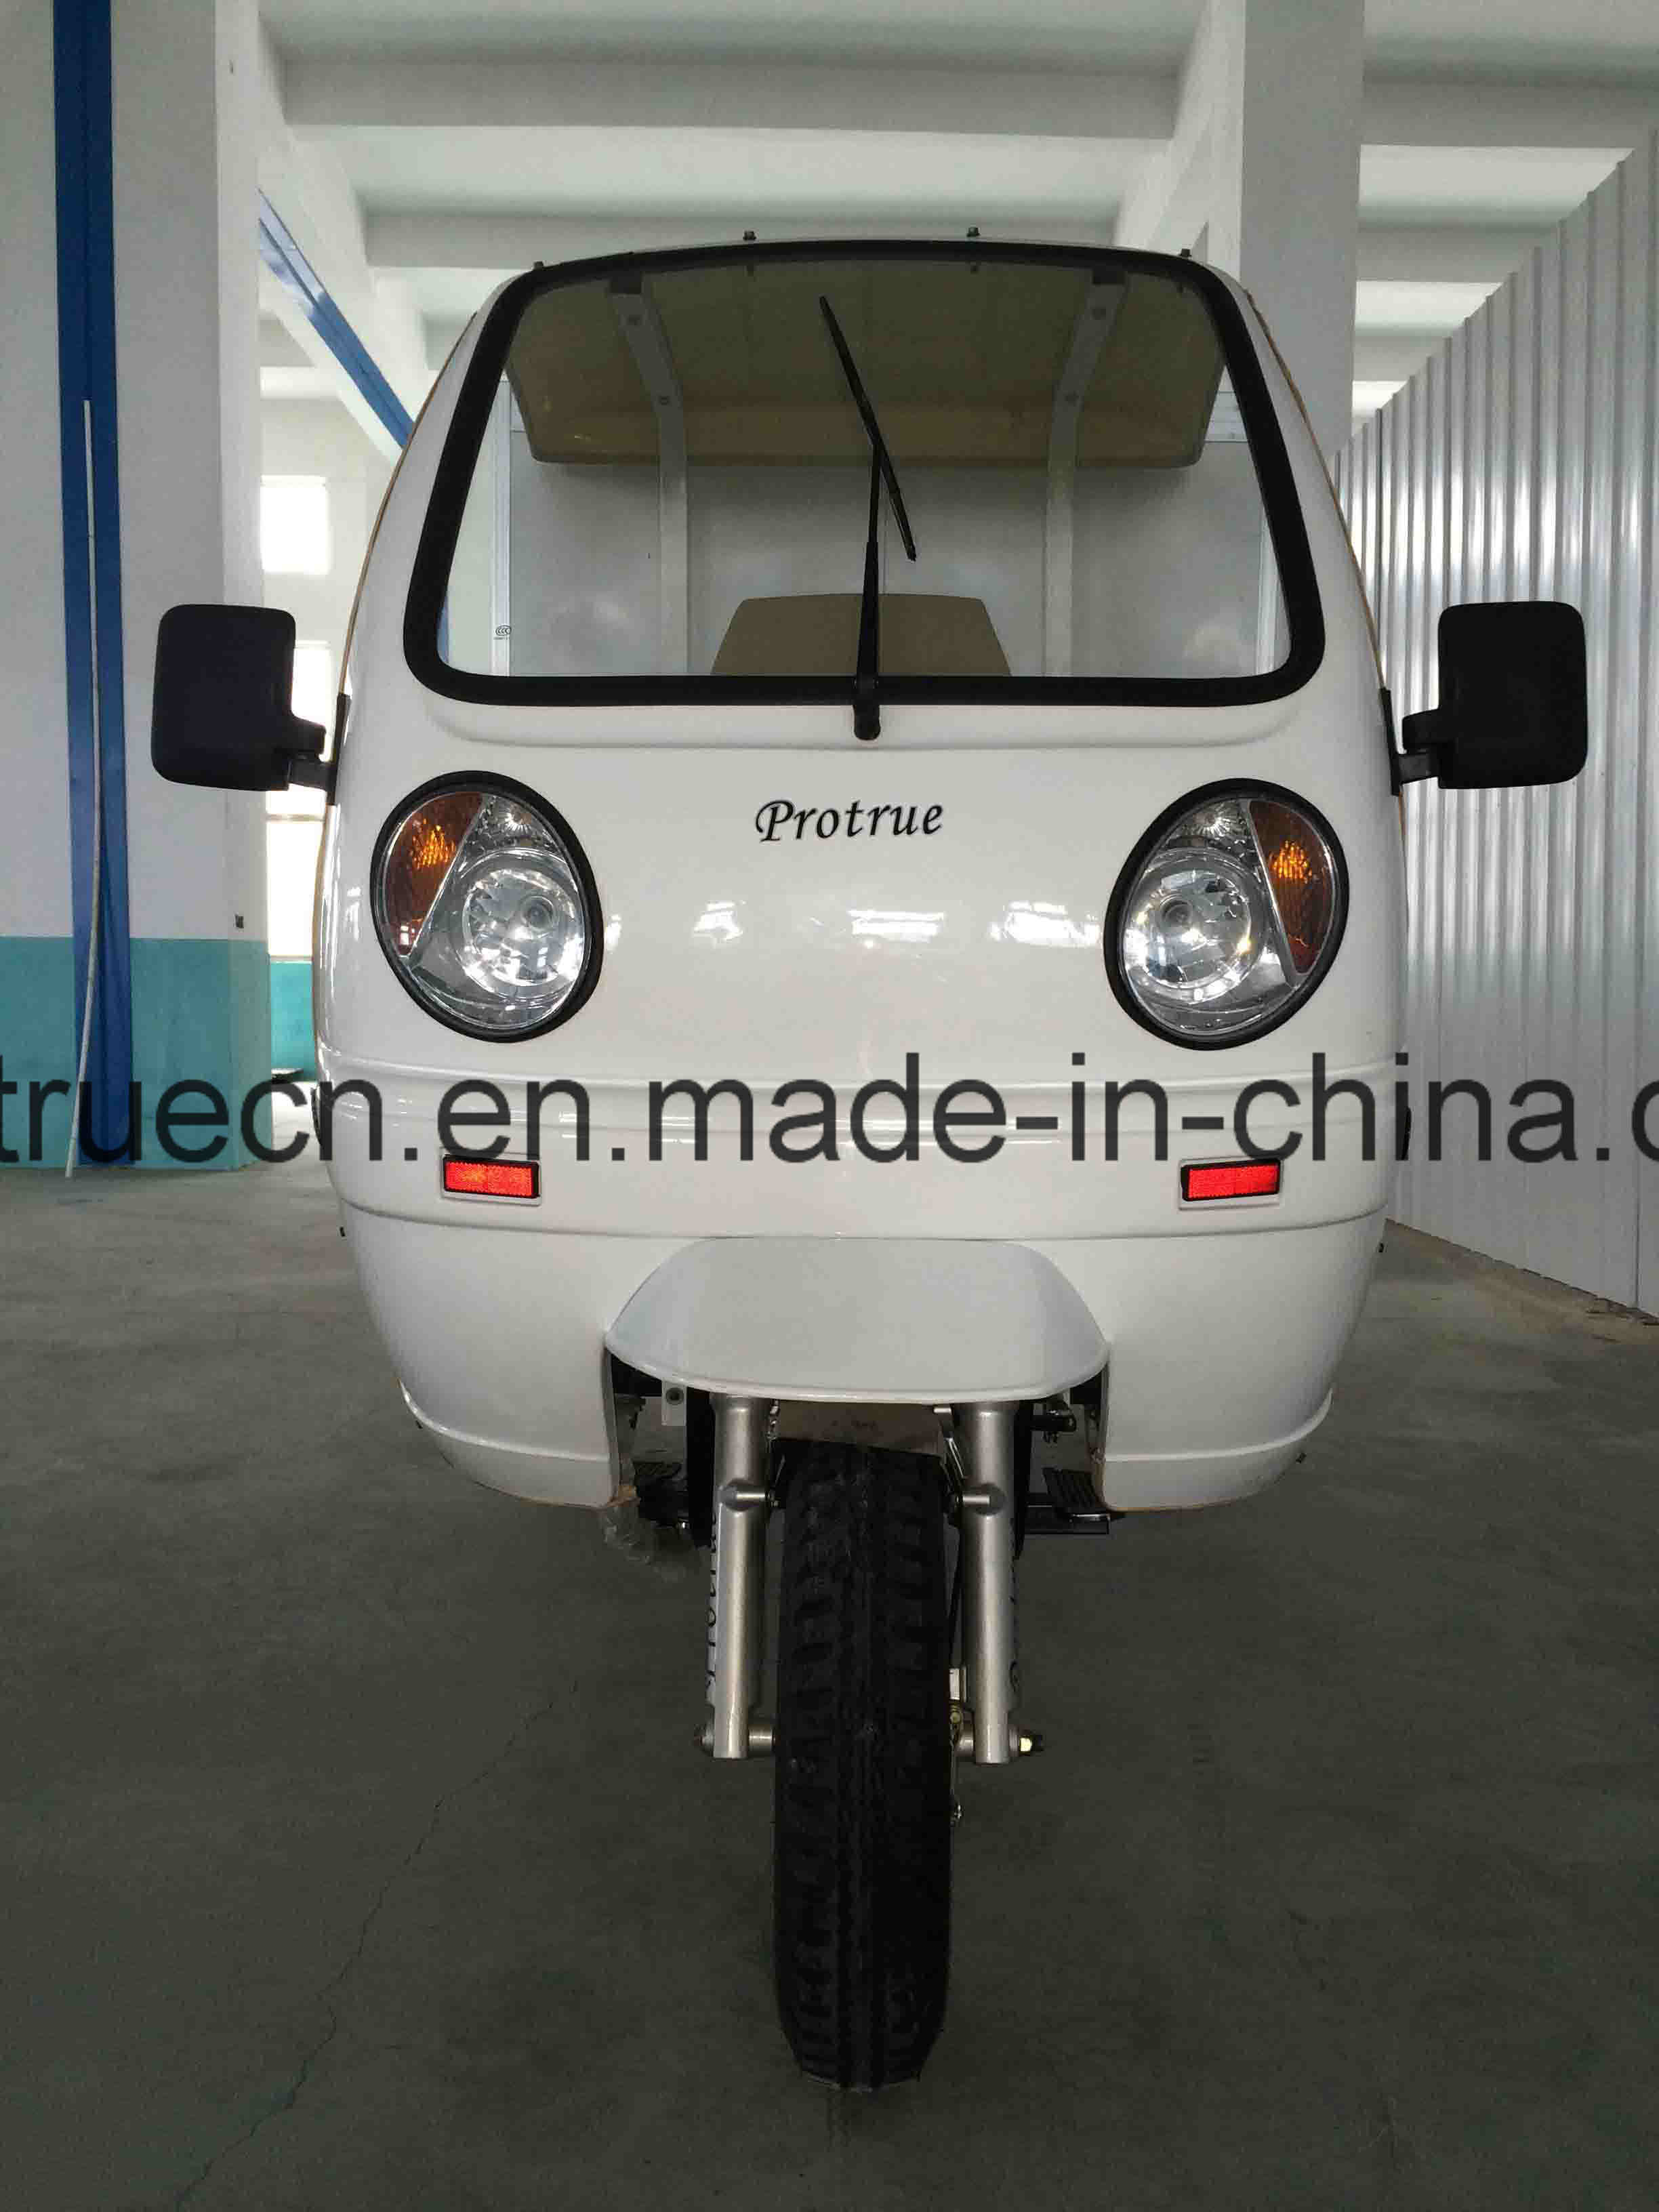 3 Wheel Tricycle with Closed Box for Insulation